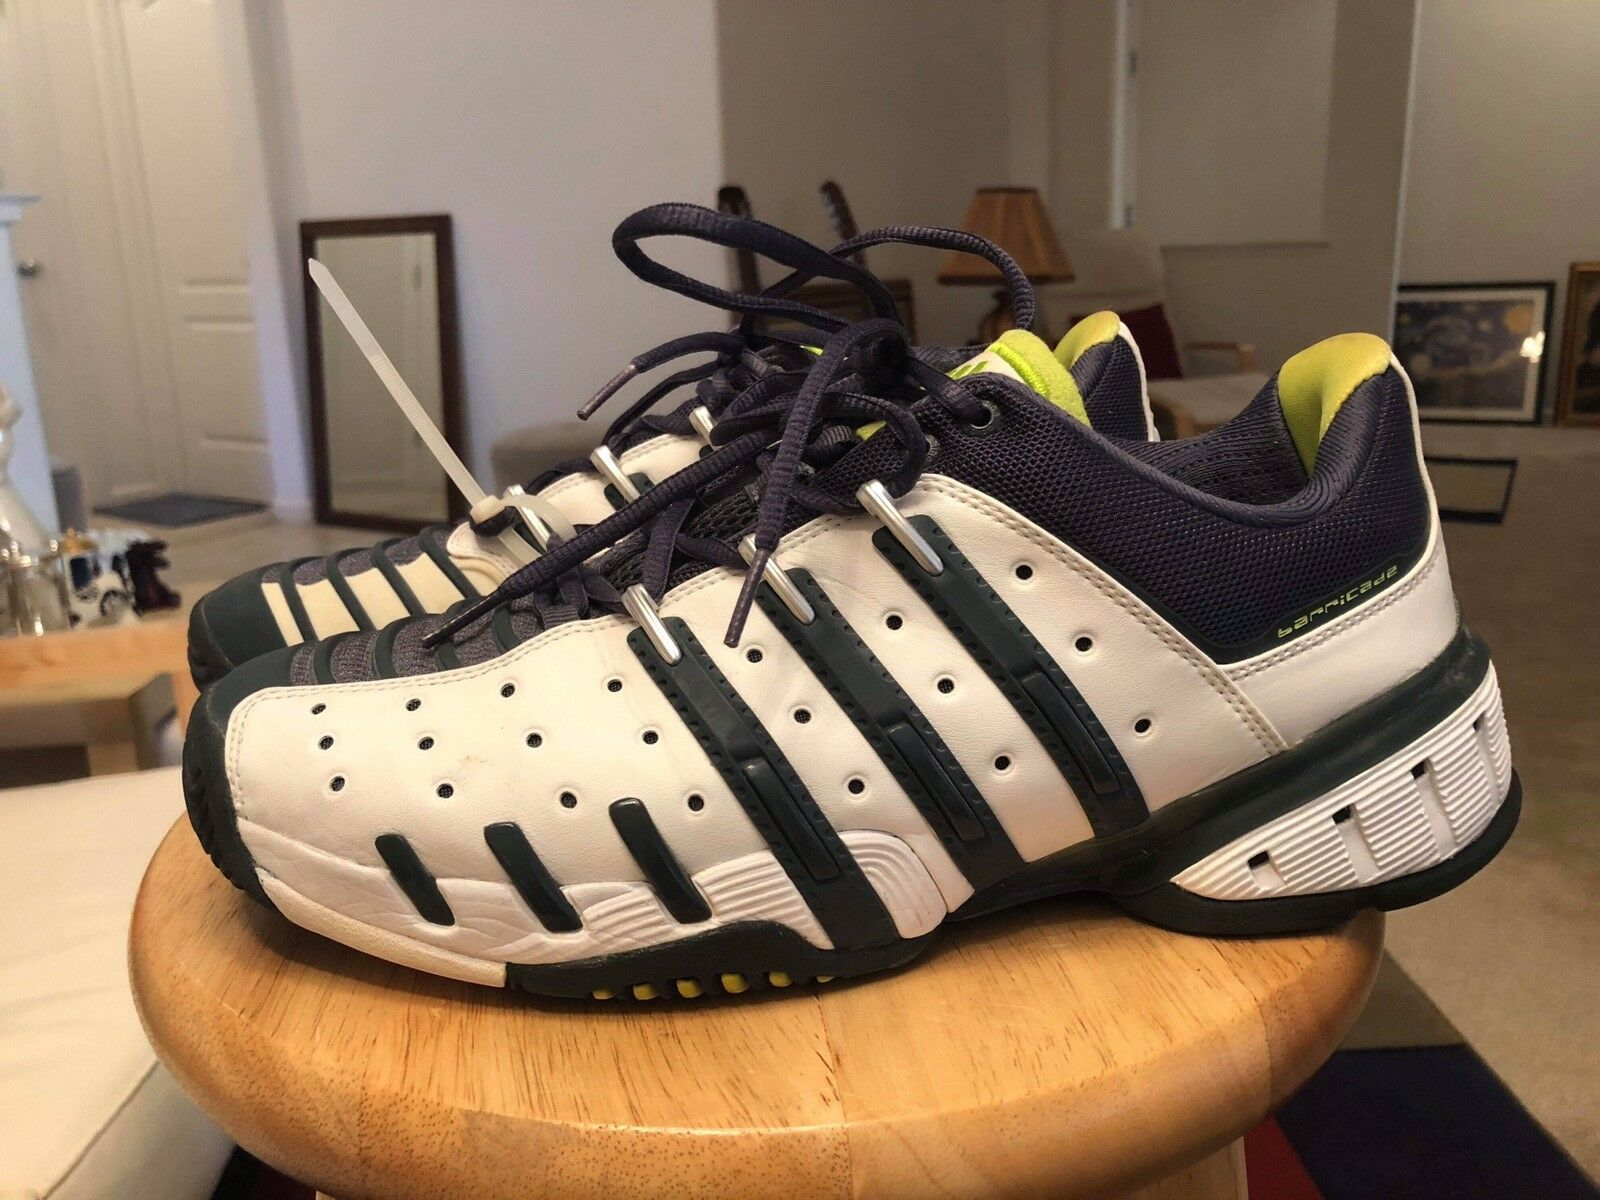 Classic Adidas Barricade White N bluee Green Mens US9.5 Athletic Sneakers shoes